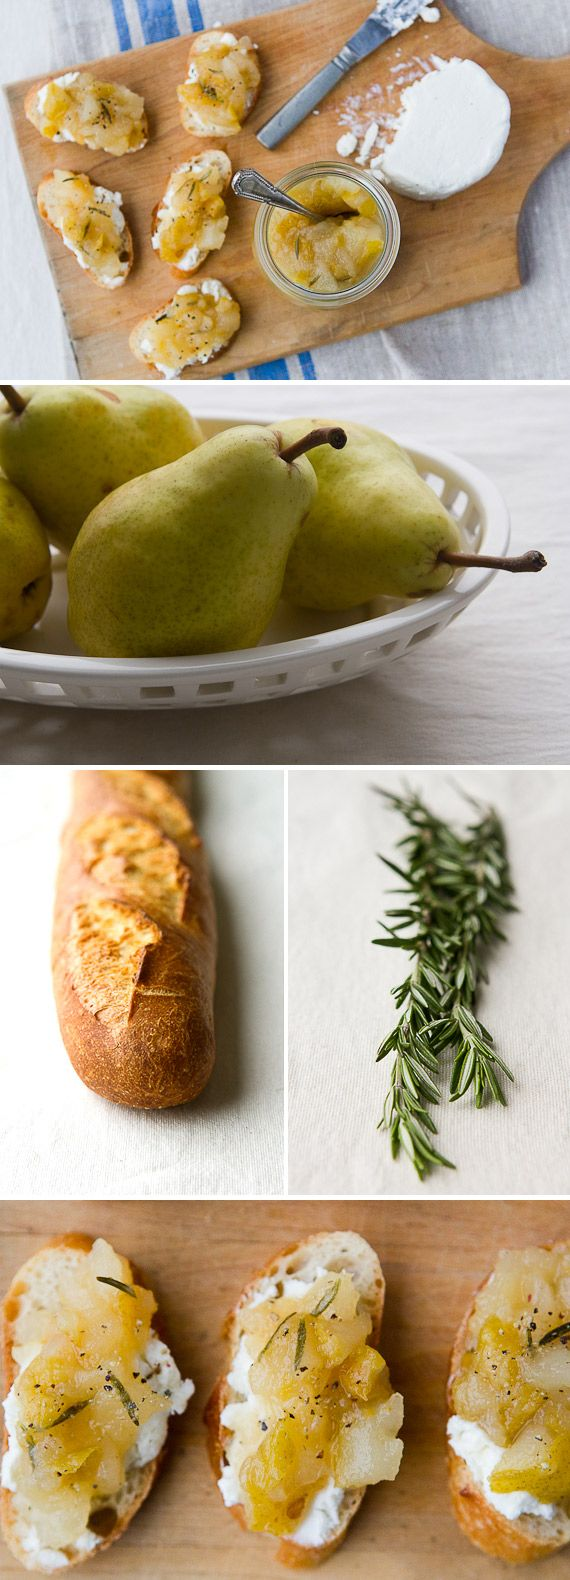 : Pear and Rosemary Crostini With Goat Cheese | Goat Cheese, Goats ...